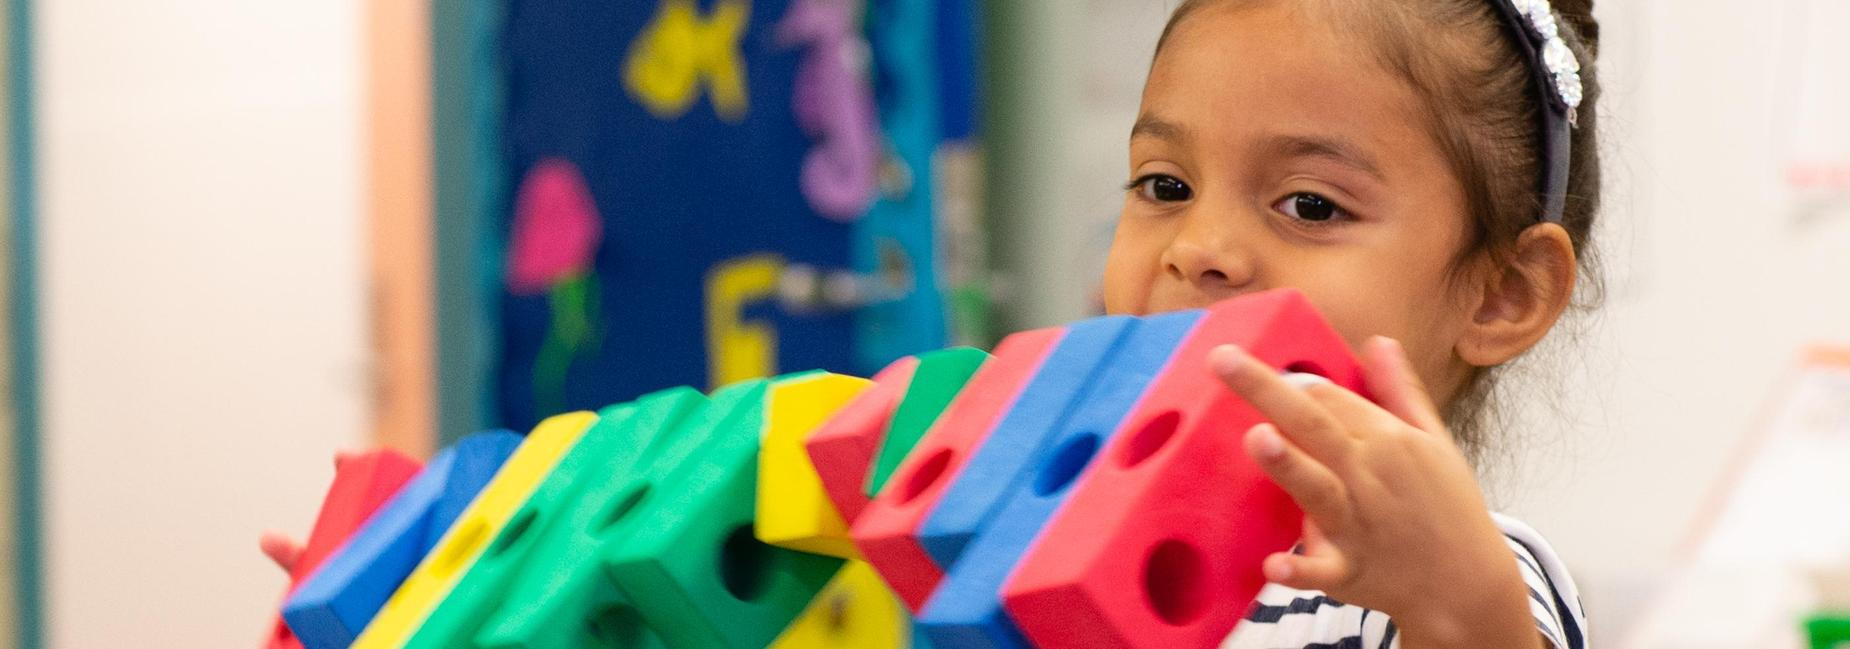 A pre-k student holding a row of blocks.